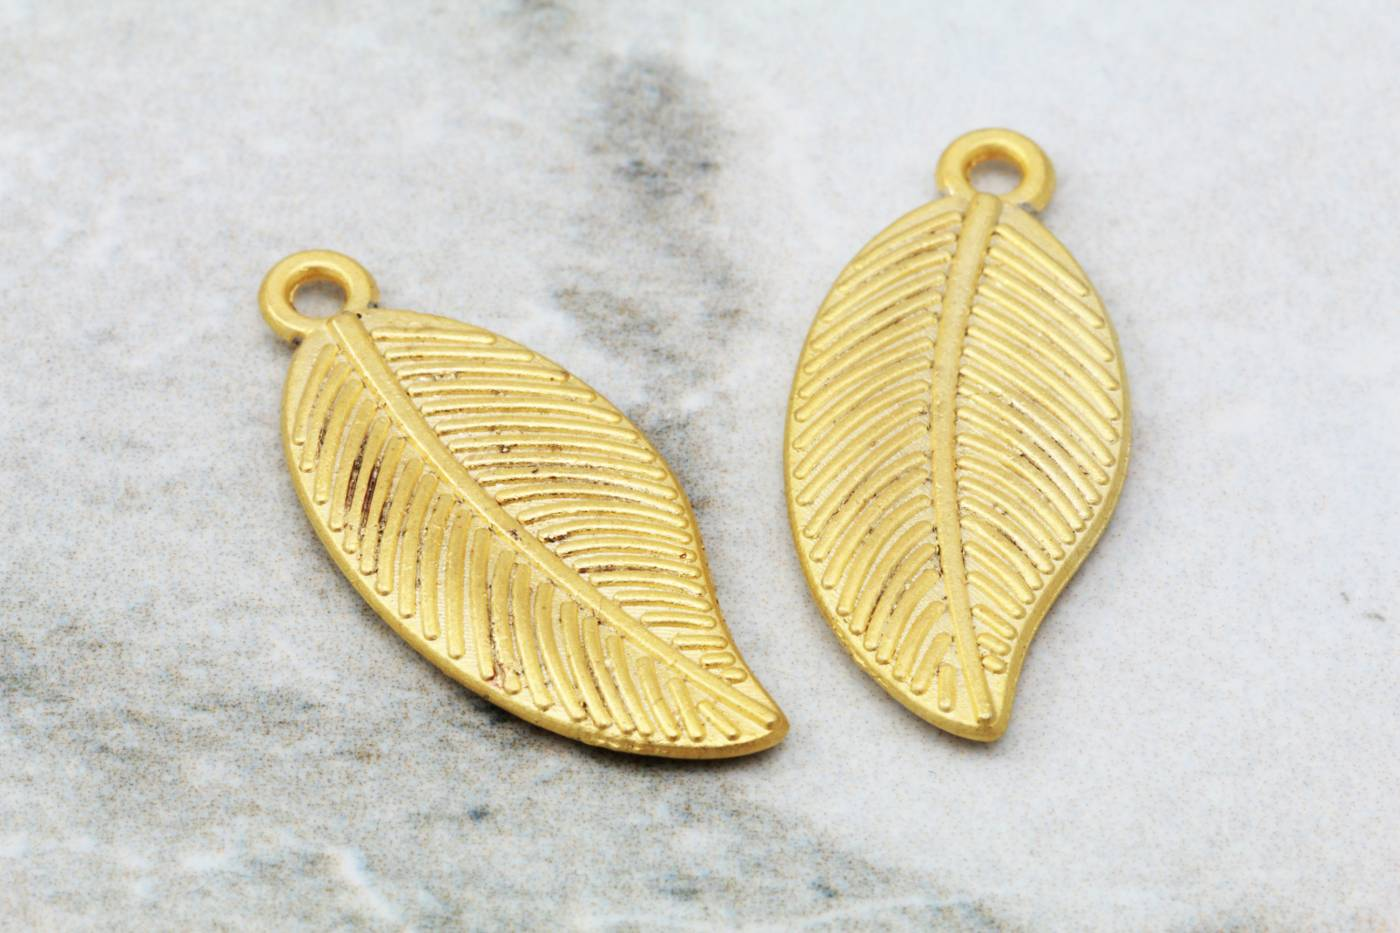 gold-plated-metal-leaf-pendant-findings.jpg